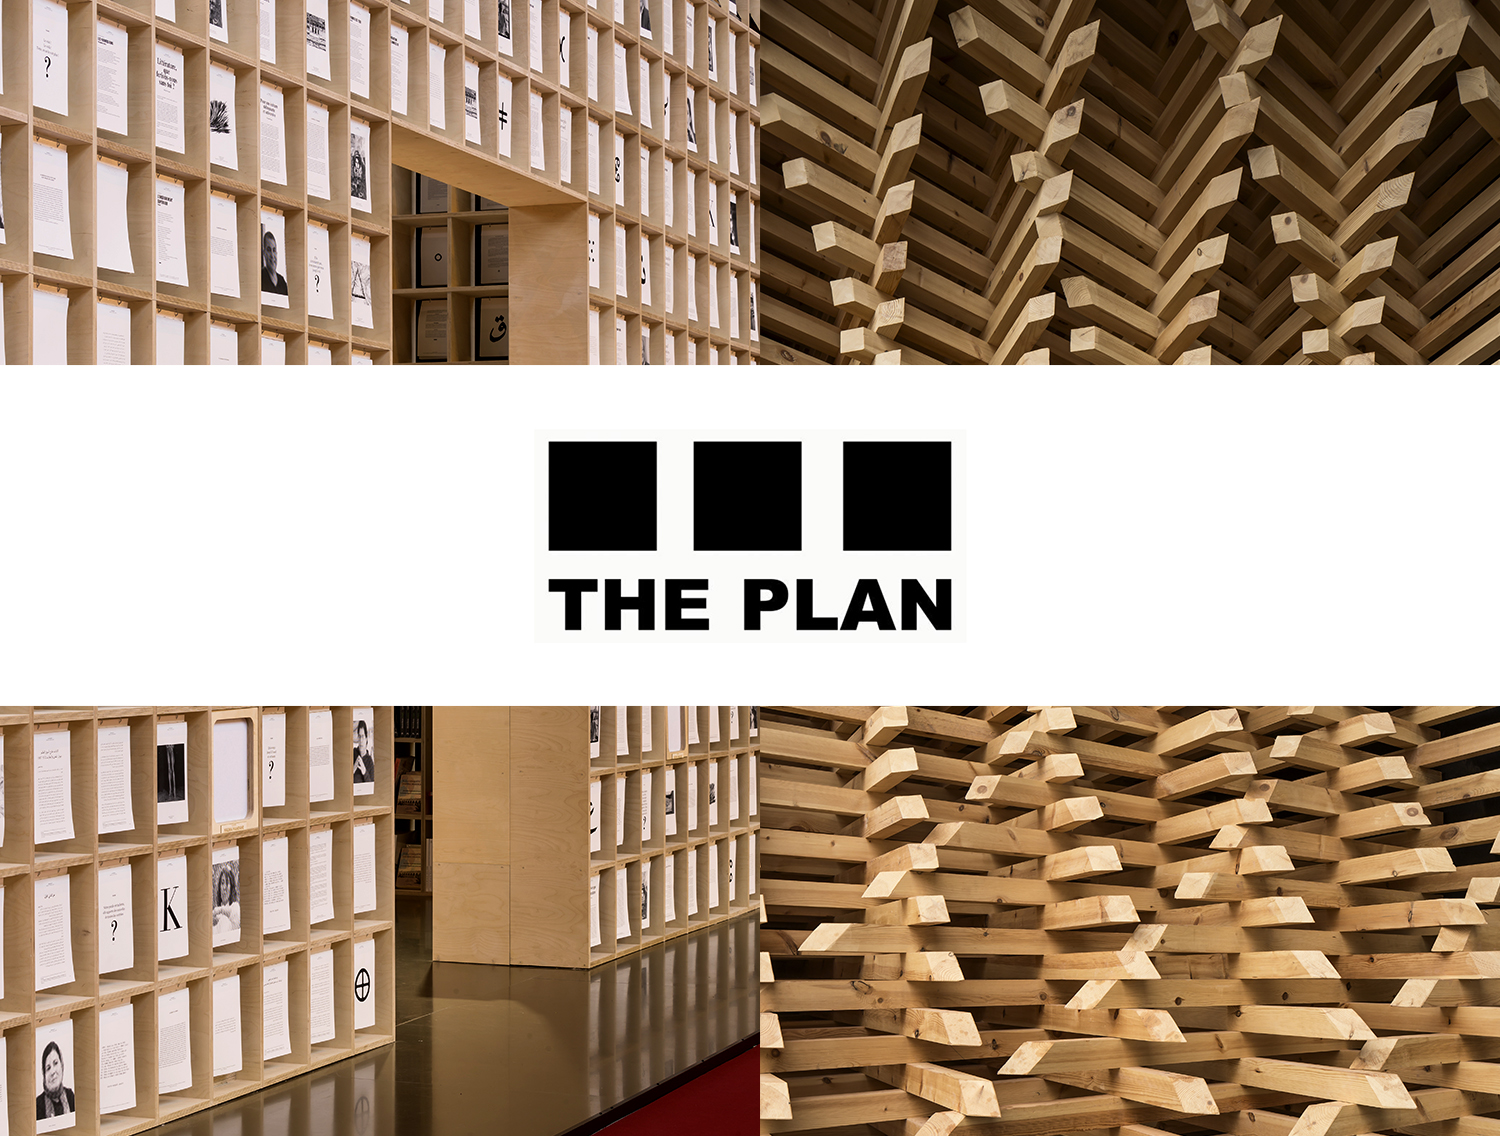 awrd - APR. 2018 | Two of our projects — LIVRE PARIS & COP 22 — are shortlisted for the annual THE PLAN AWARD